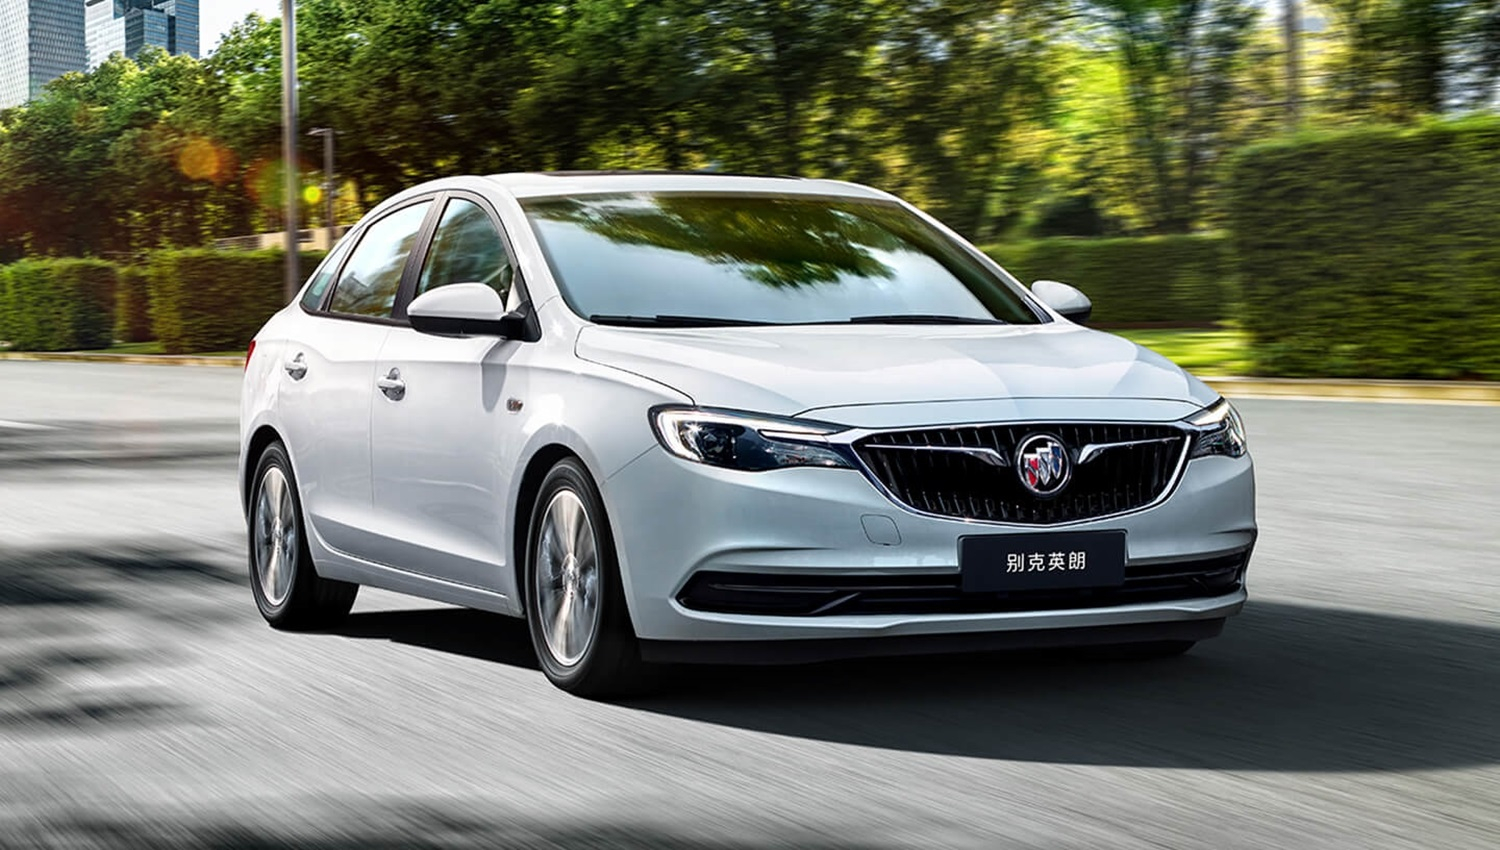 New 2021 Buick Excelle Gt Mild Hybrid Revealed | Gm Authority New 2021 Buick Verano Pictures, Headlights, Horsepower